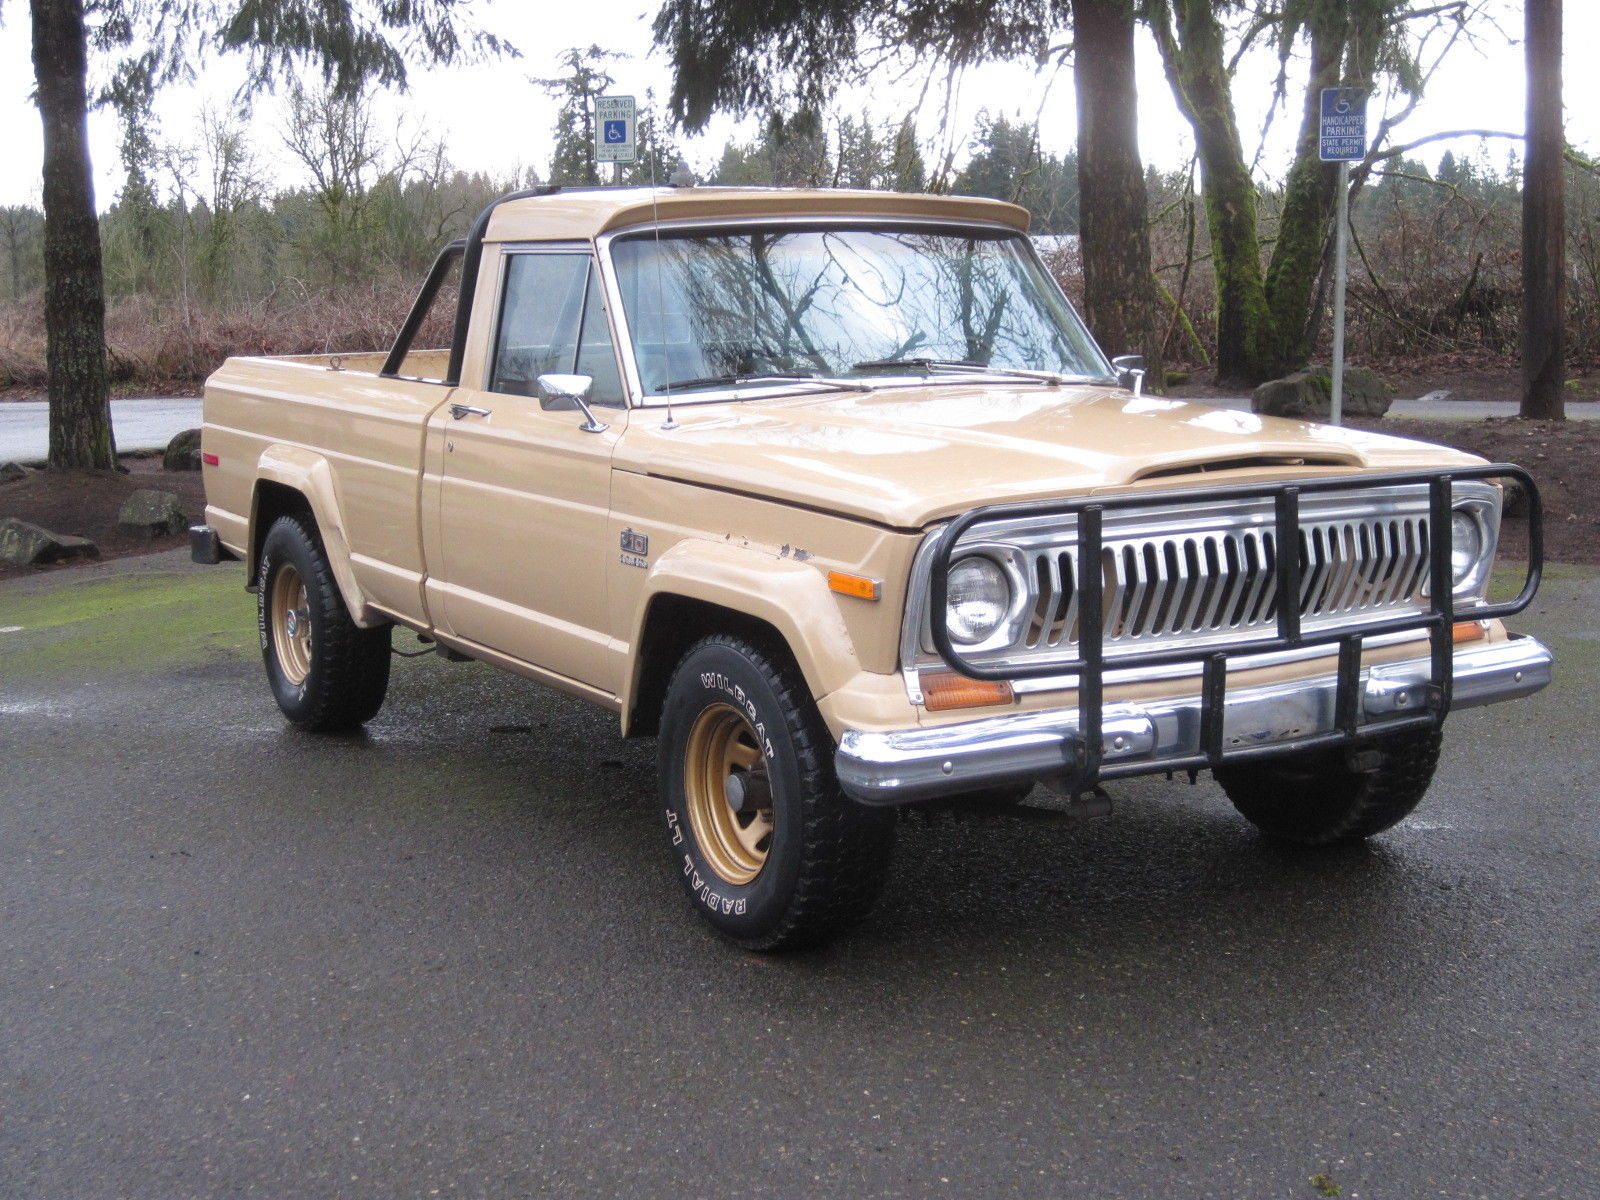 Truck Grill Guard >> Jeep 1978 J10 J-10 GOLDEN EAGLE 401 Shortbed 4x4 Rust Free Original Truck Levi's for sale in ...